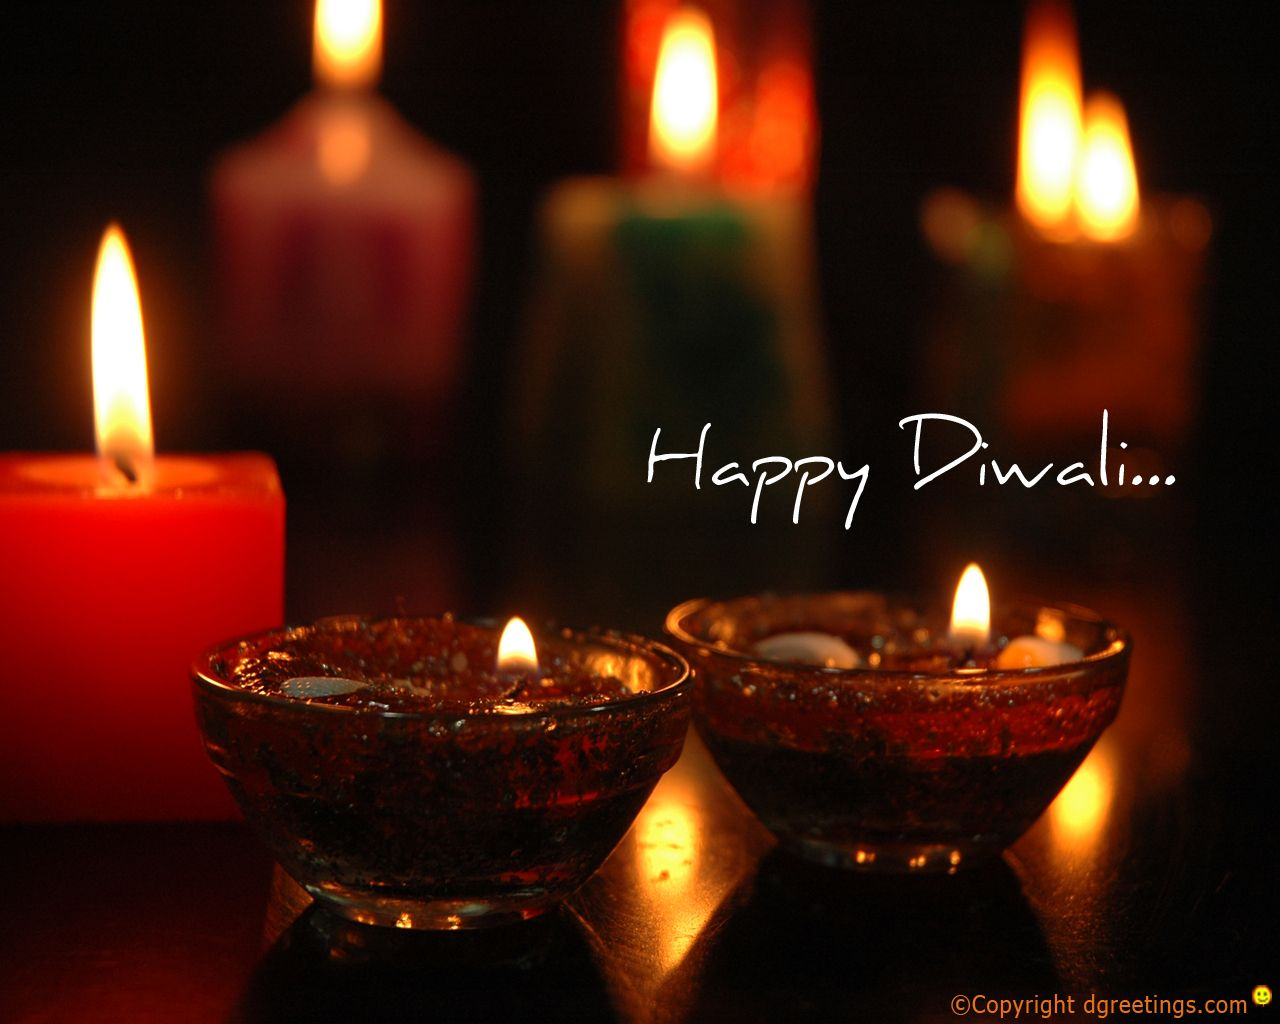 Echhschapel hill east chapel hill high school and all chccs free diwali ecardsfree diwali greeting cardshappy diwali cards diwali wallpapersall information are available in this site m4hsunfo Images